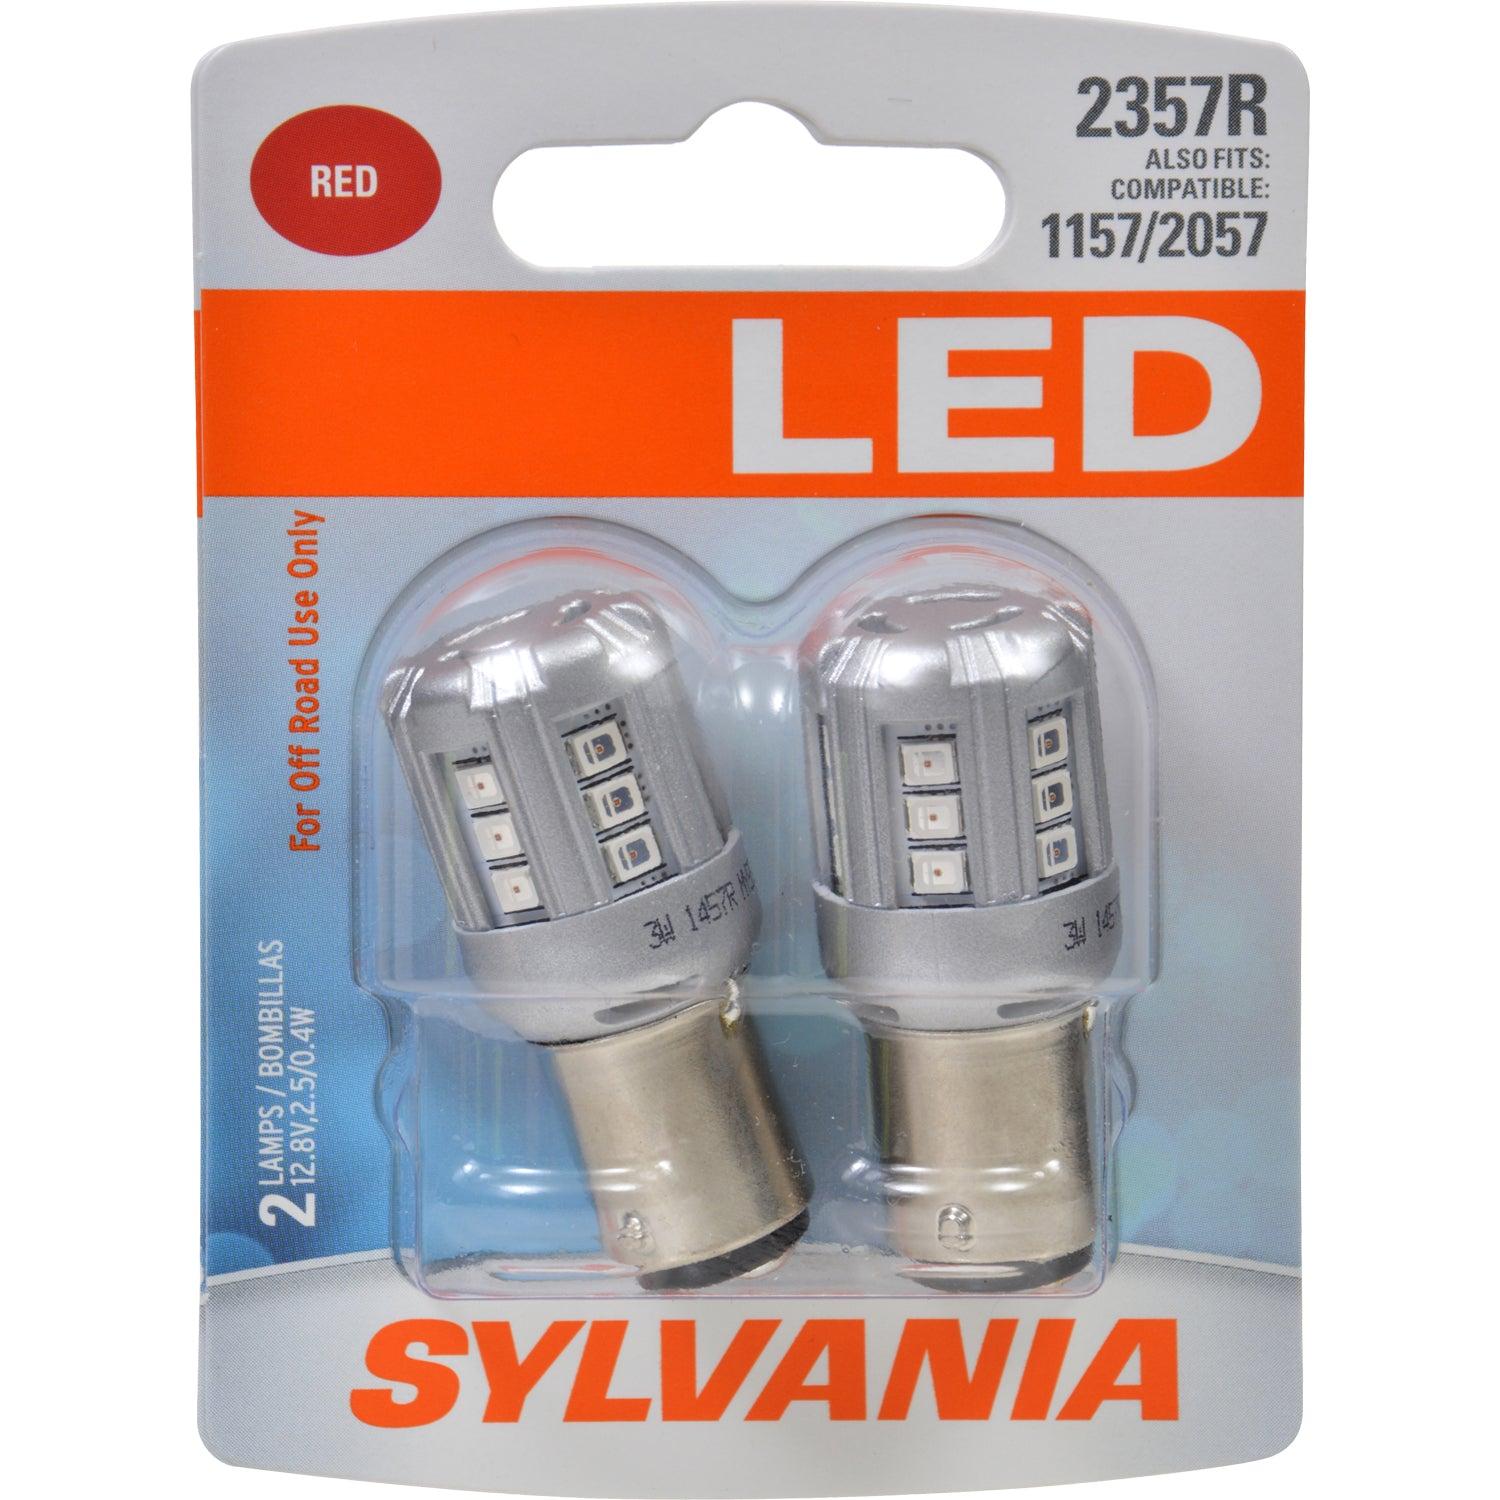 2-PK SYLVANIA 2357 Red LED Automotive Bulb - also fits 1157 & 2057